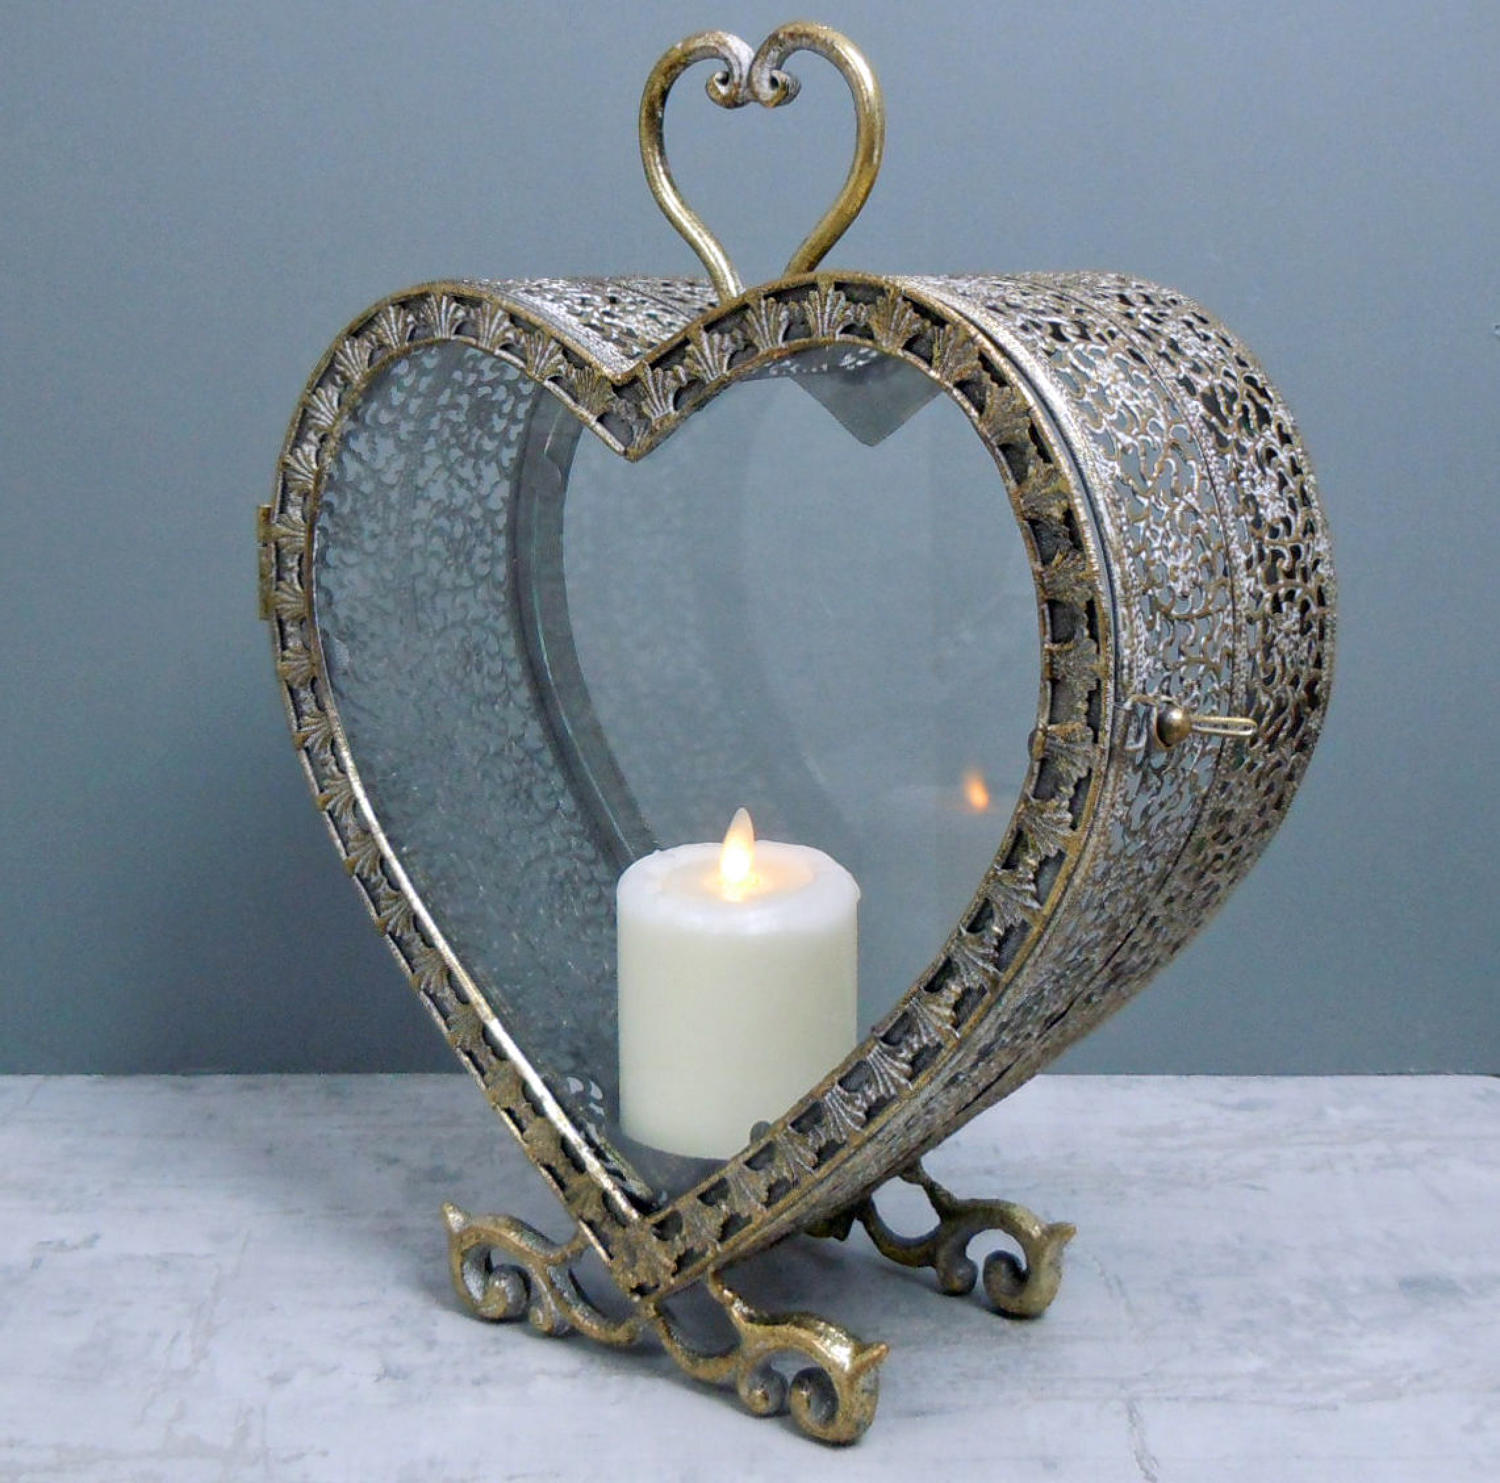 Rustic gold metal heart candle holder lantern